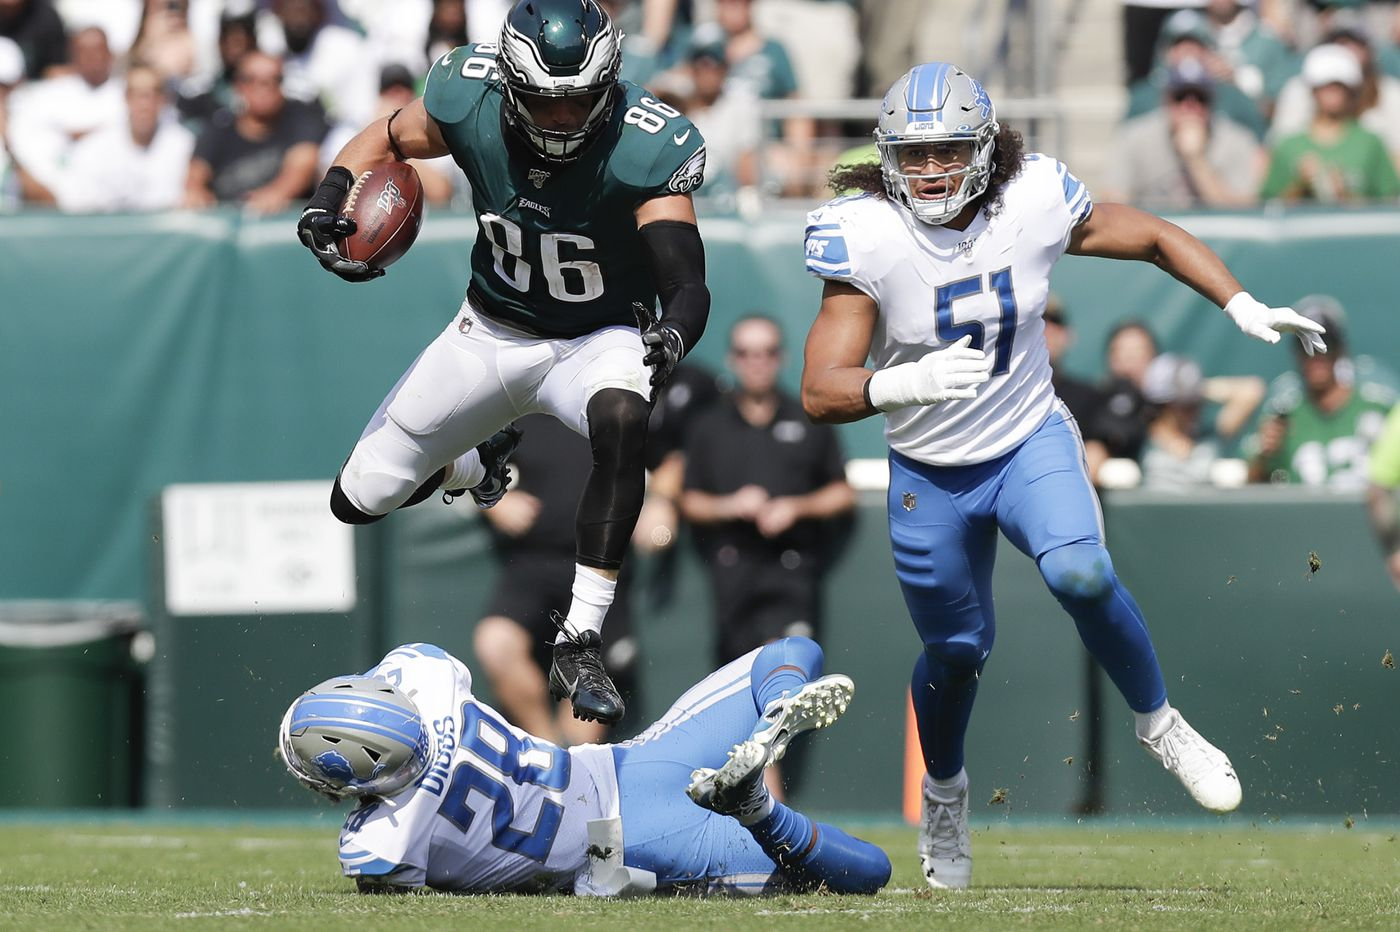 Vegas Vic's NFL Week 12 predictions: Zach Ertz staying hot for Eagles, and Lions to roll